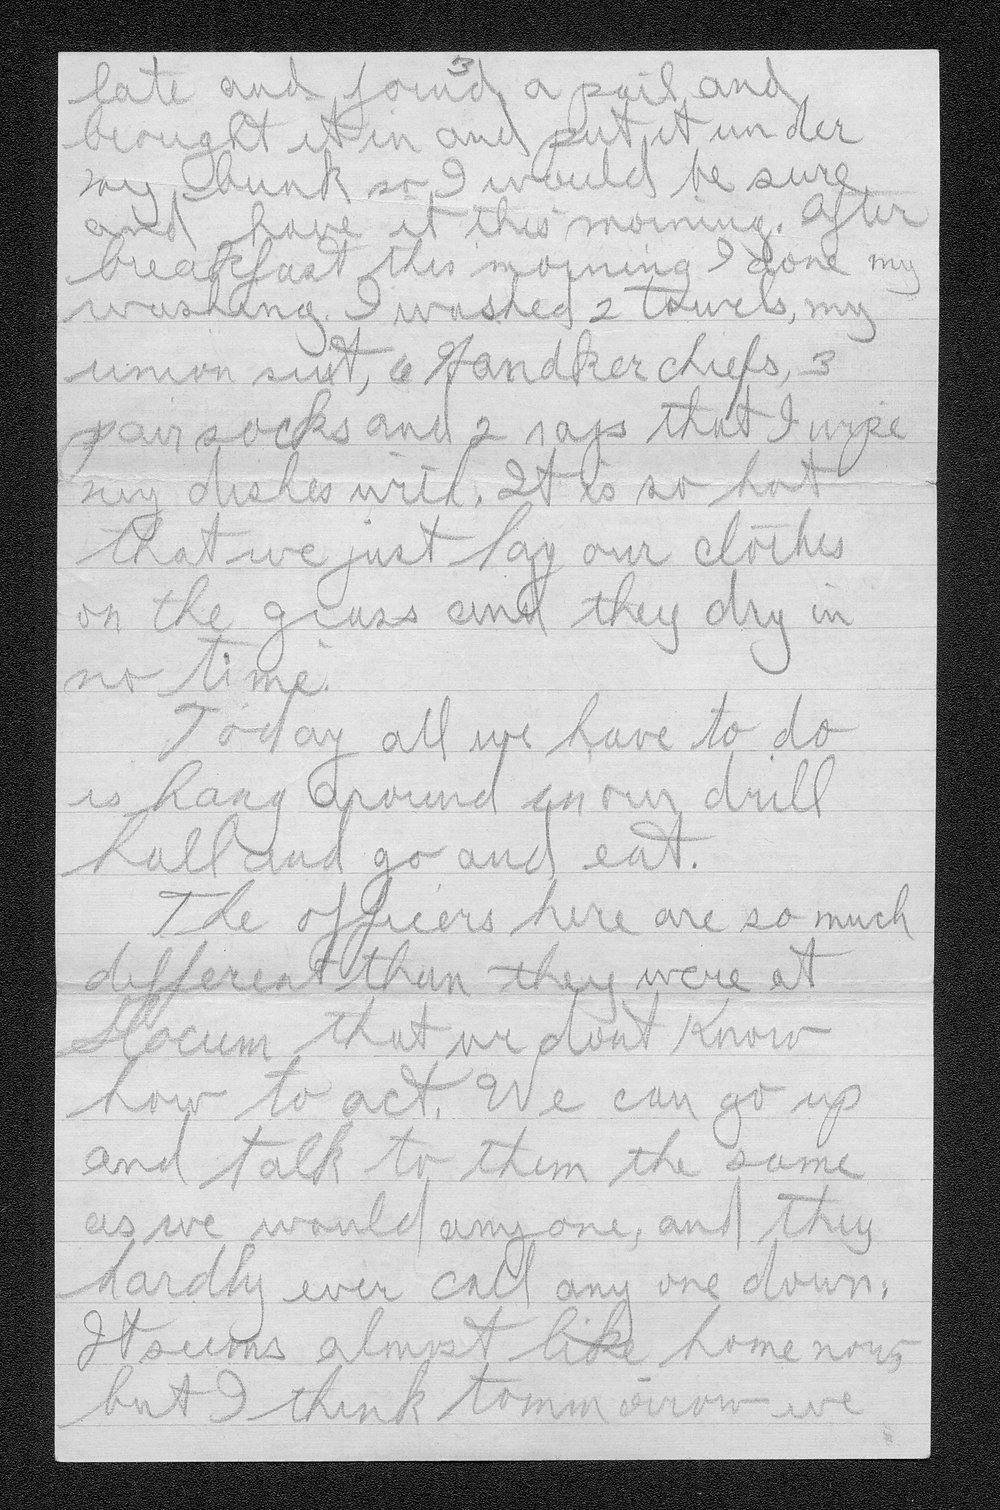 Clark Bruster to his family - 9